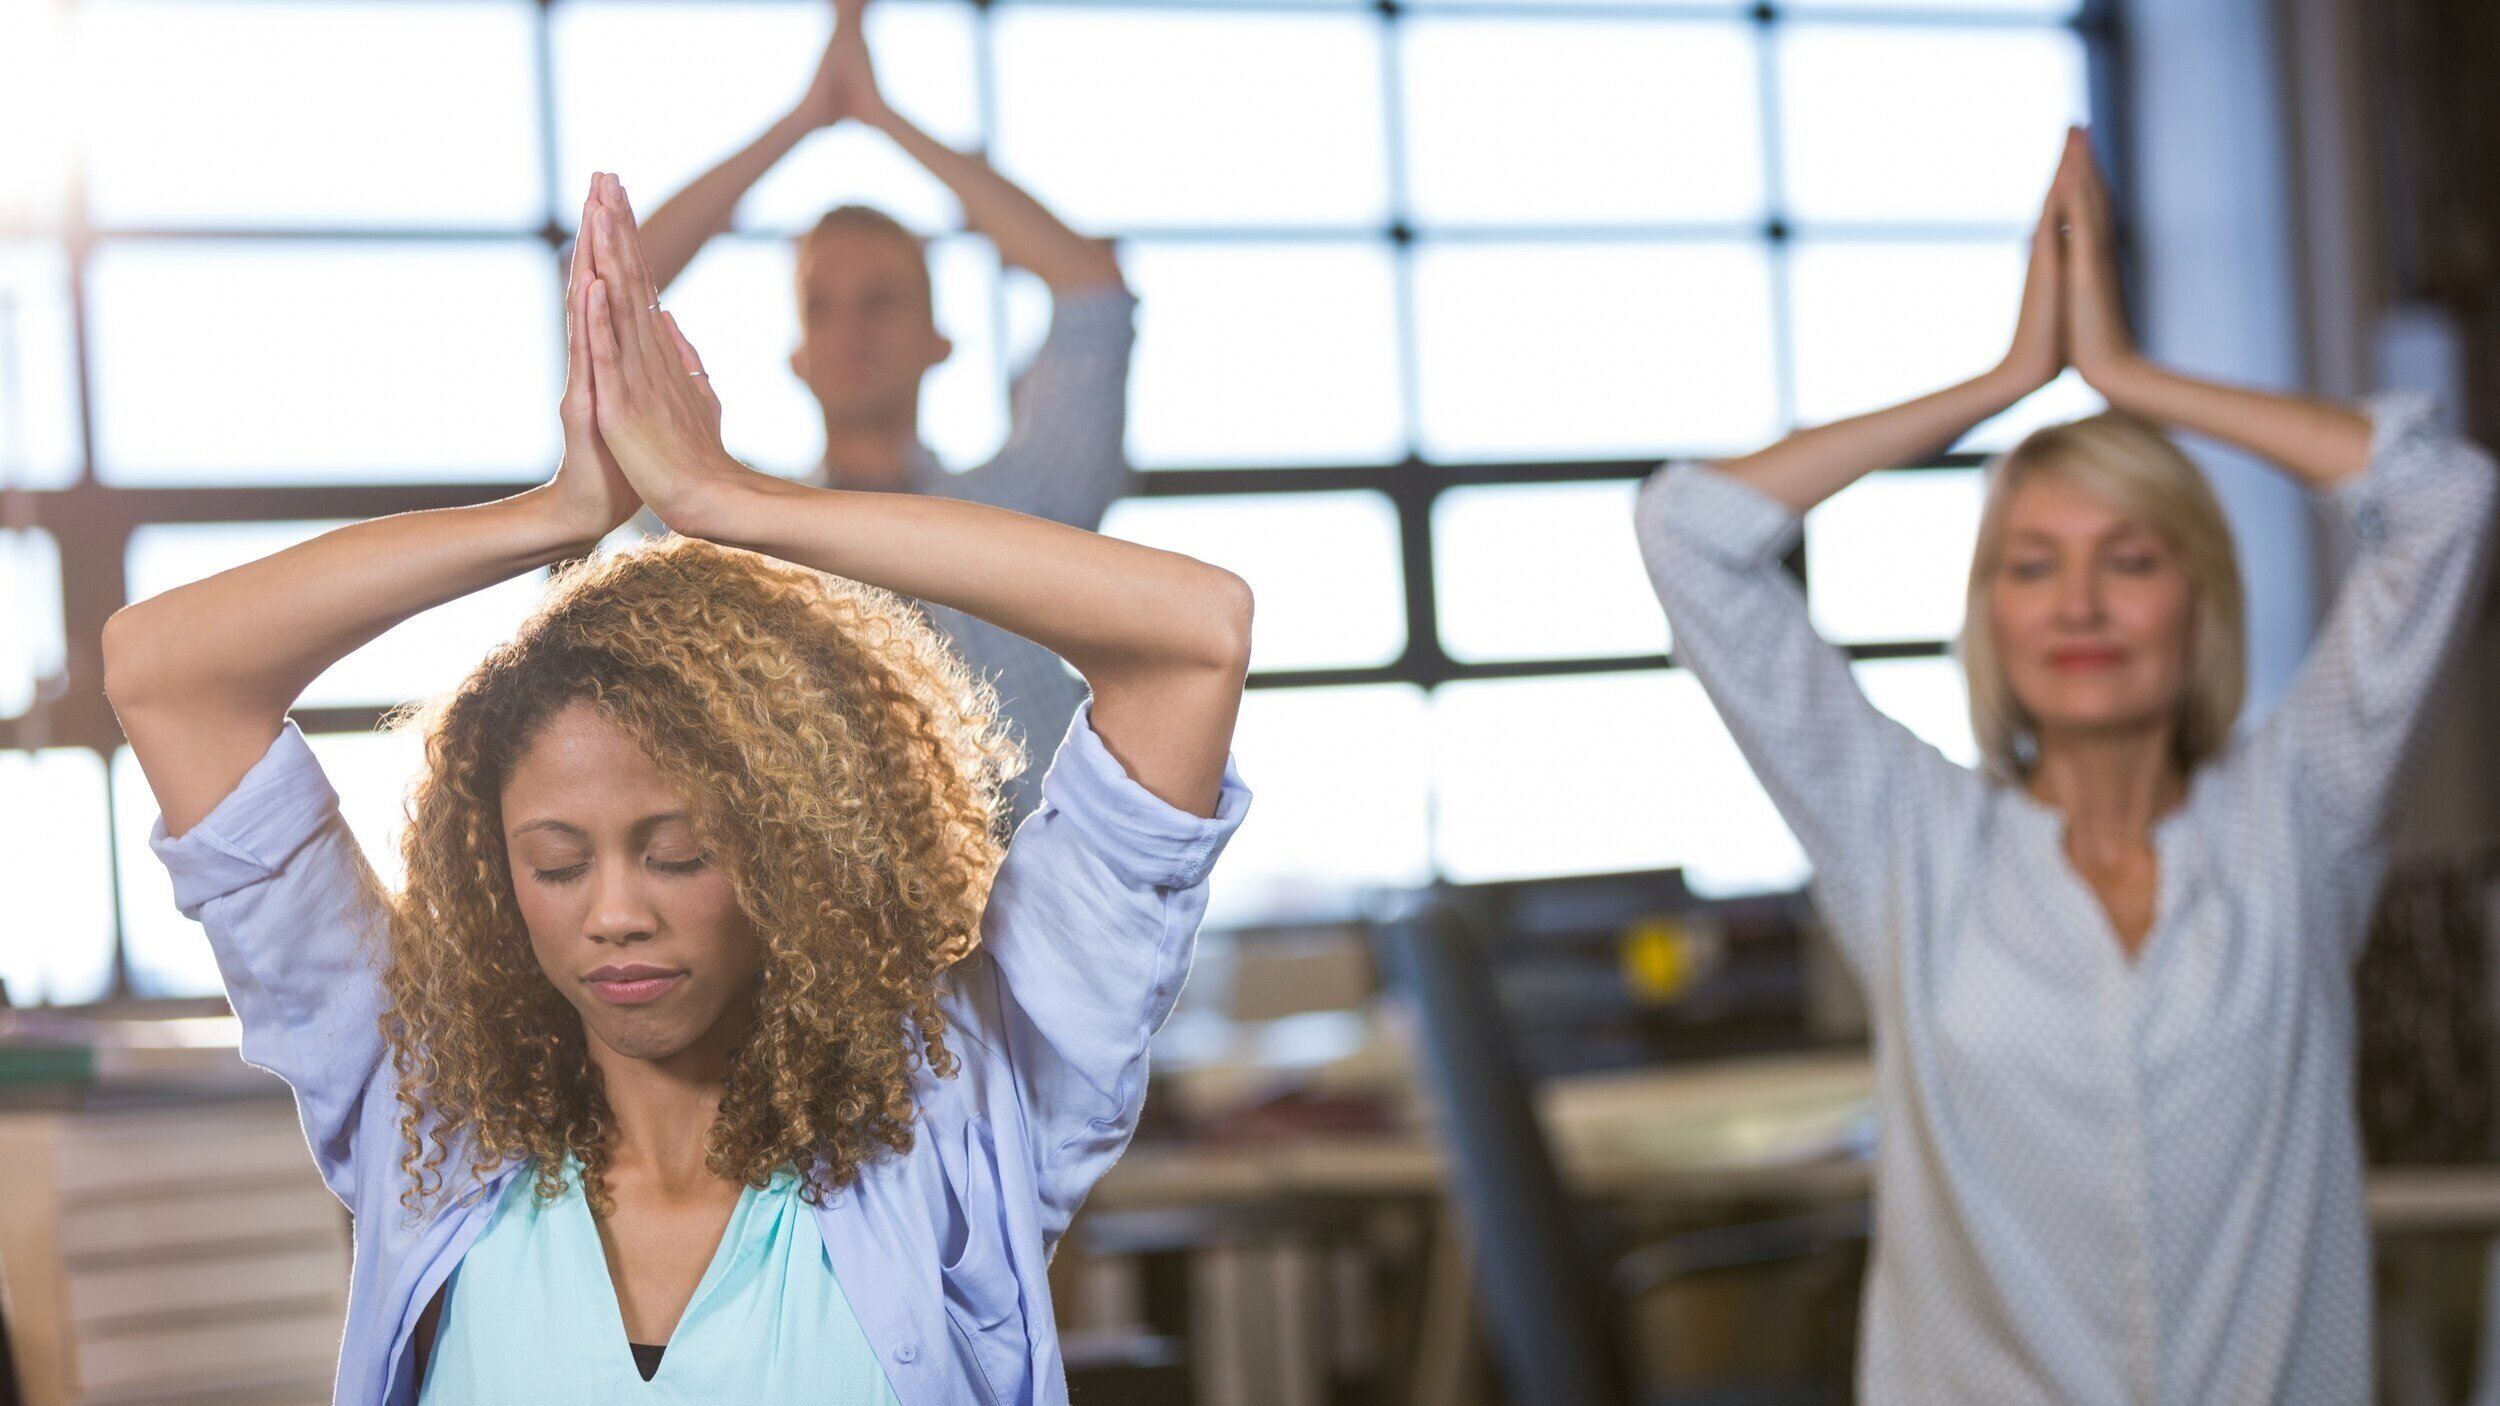 Corporate Yoga - Wellness for your employees and for your business